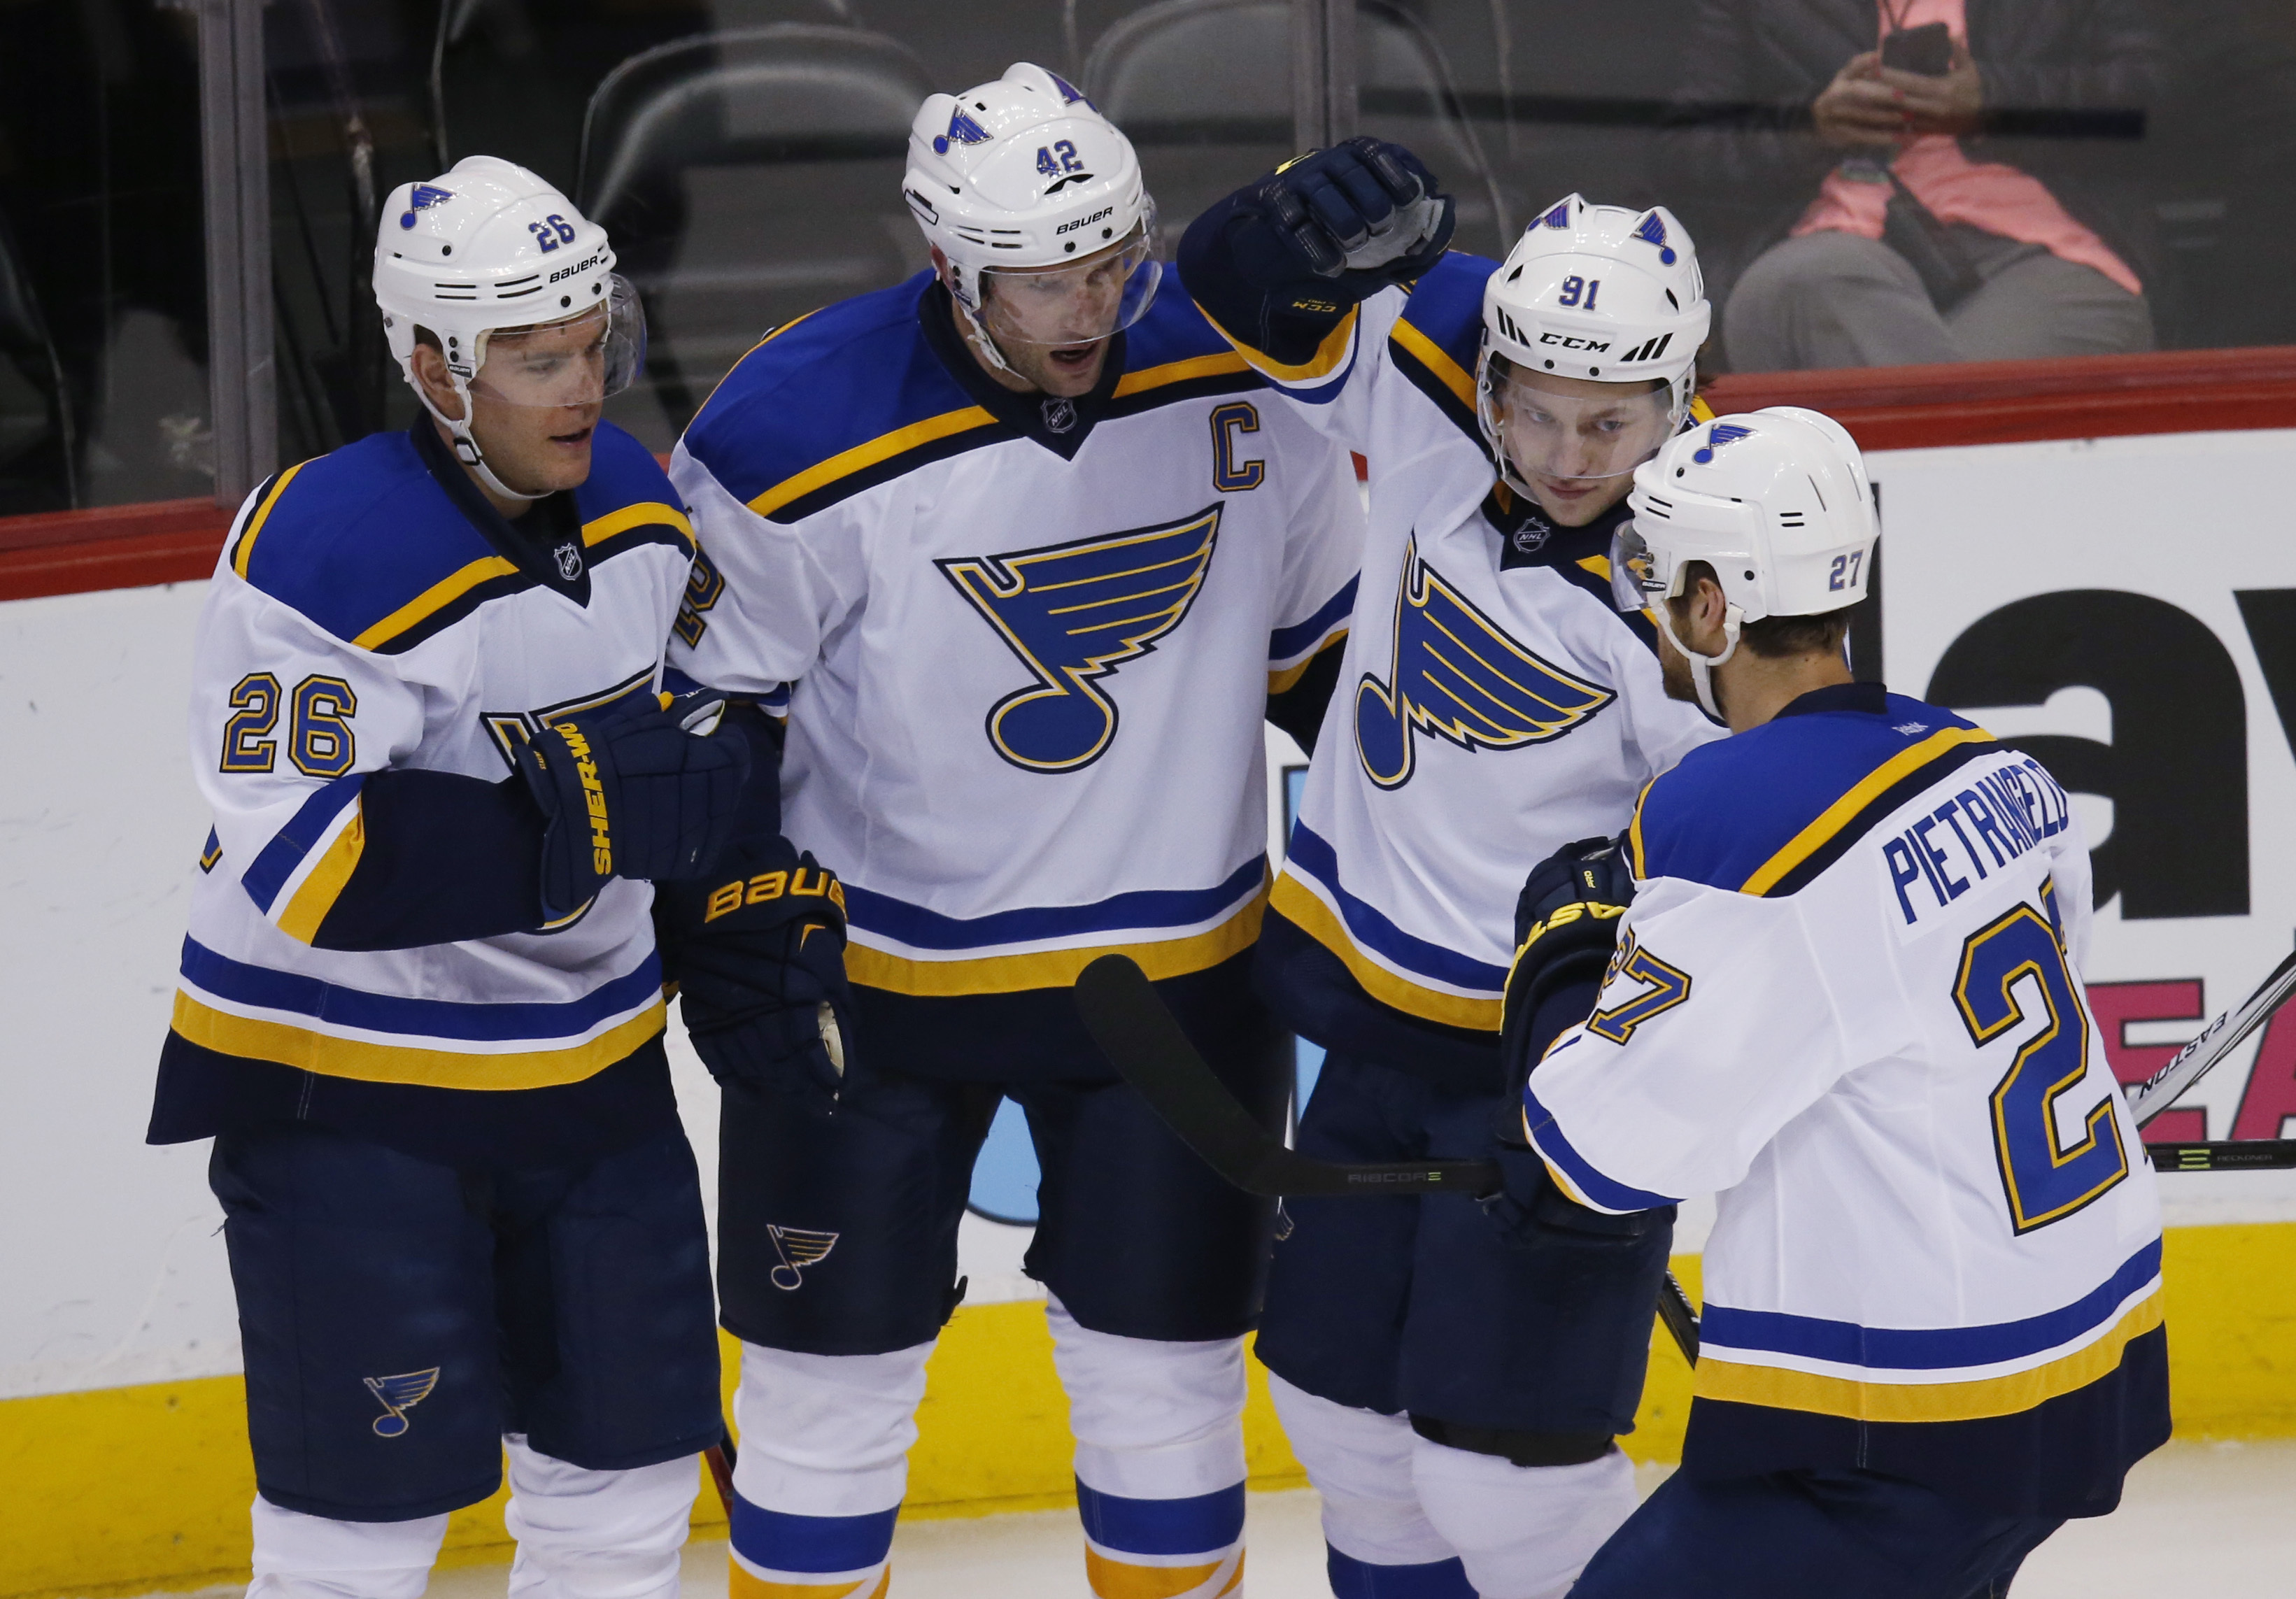 St. Louis Blues center David Backes, second from left, celebrates scoring a goal with, from left, center Paul Stastny, right wing Vladimir Tarasenko, of Russia, and defenseman Alex Pietrangelo against the Colorado Avalanche in the first period of an NHL h